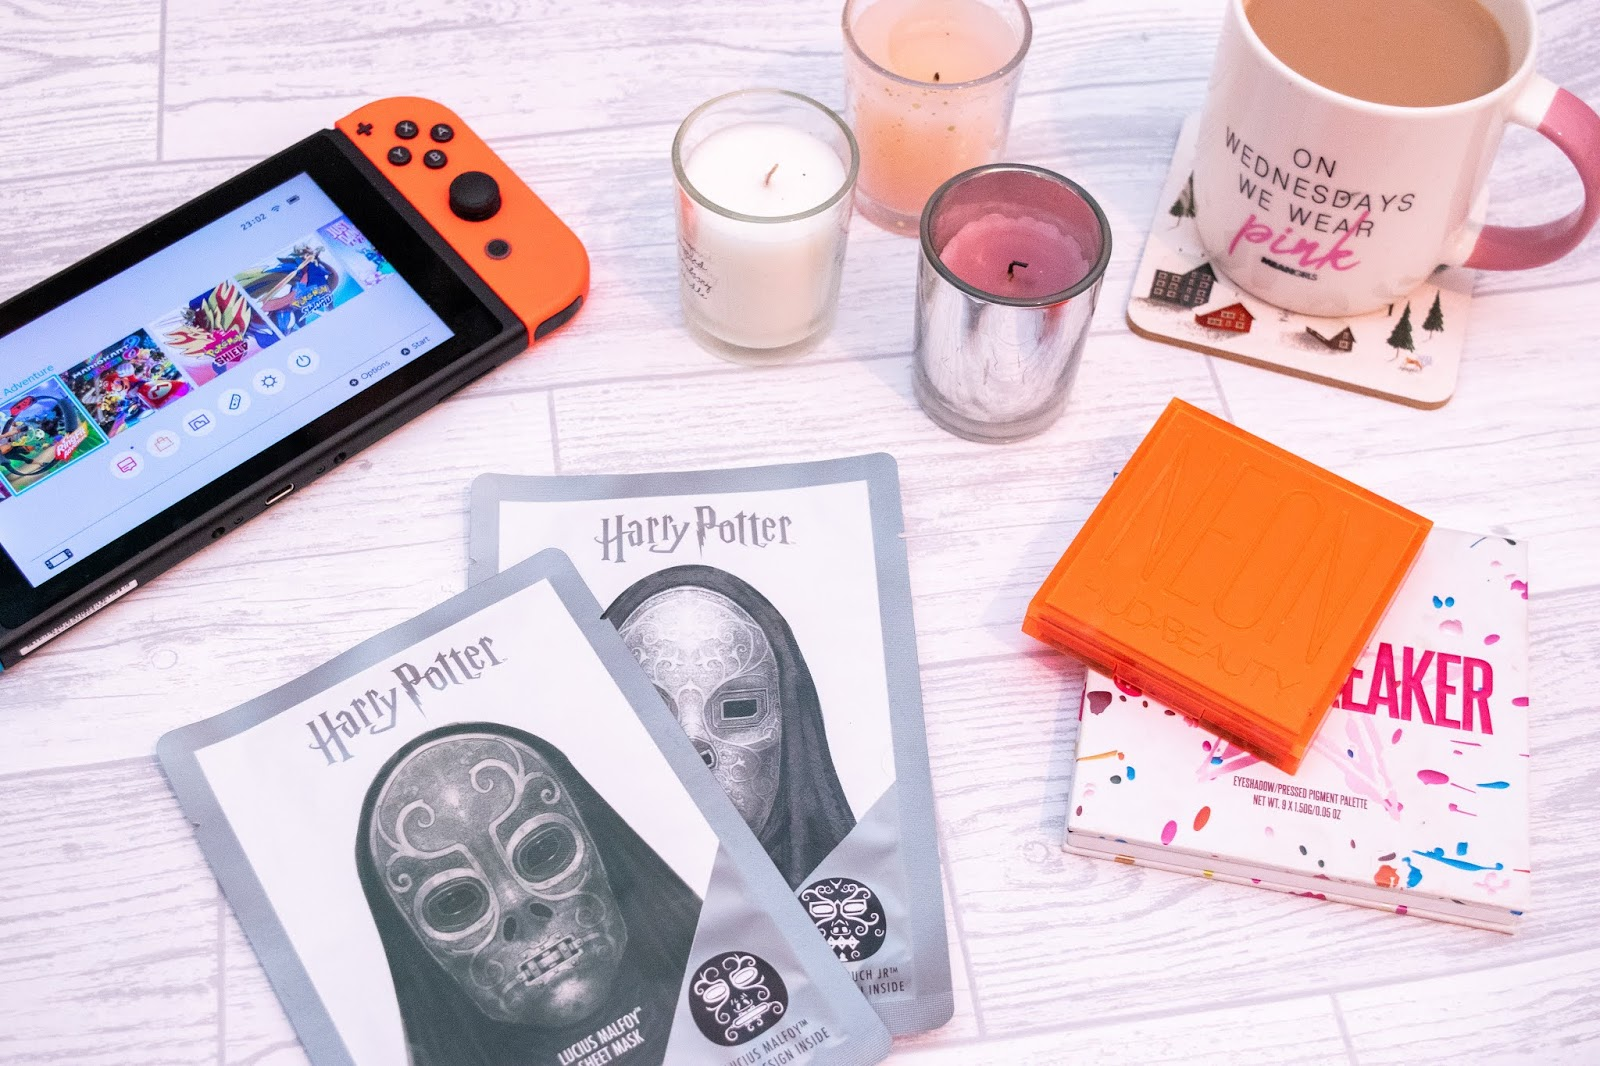 A flat-lay including a Nintendo Switch to the top right, two Harry Potter themed face masks at the bottom stacked, three votive candles in pink, white and lilac, a cup of tea in a white and pink mug on the top right and two eye-shadow palettes on the bottom left stacked one on top of the other.